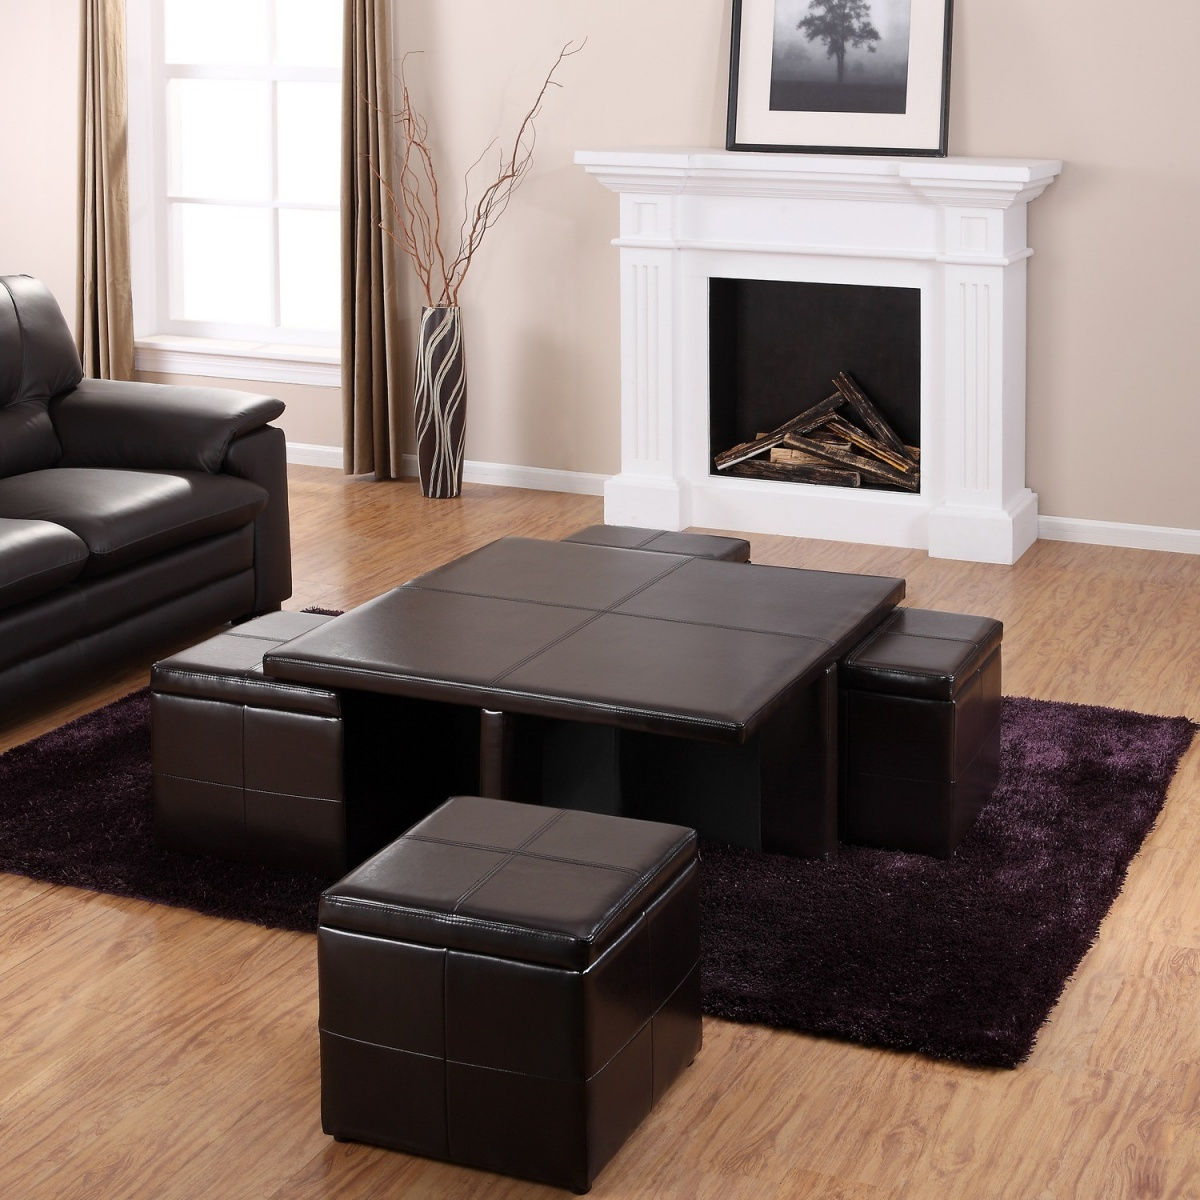 Decorating Living Room With Ottoman